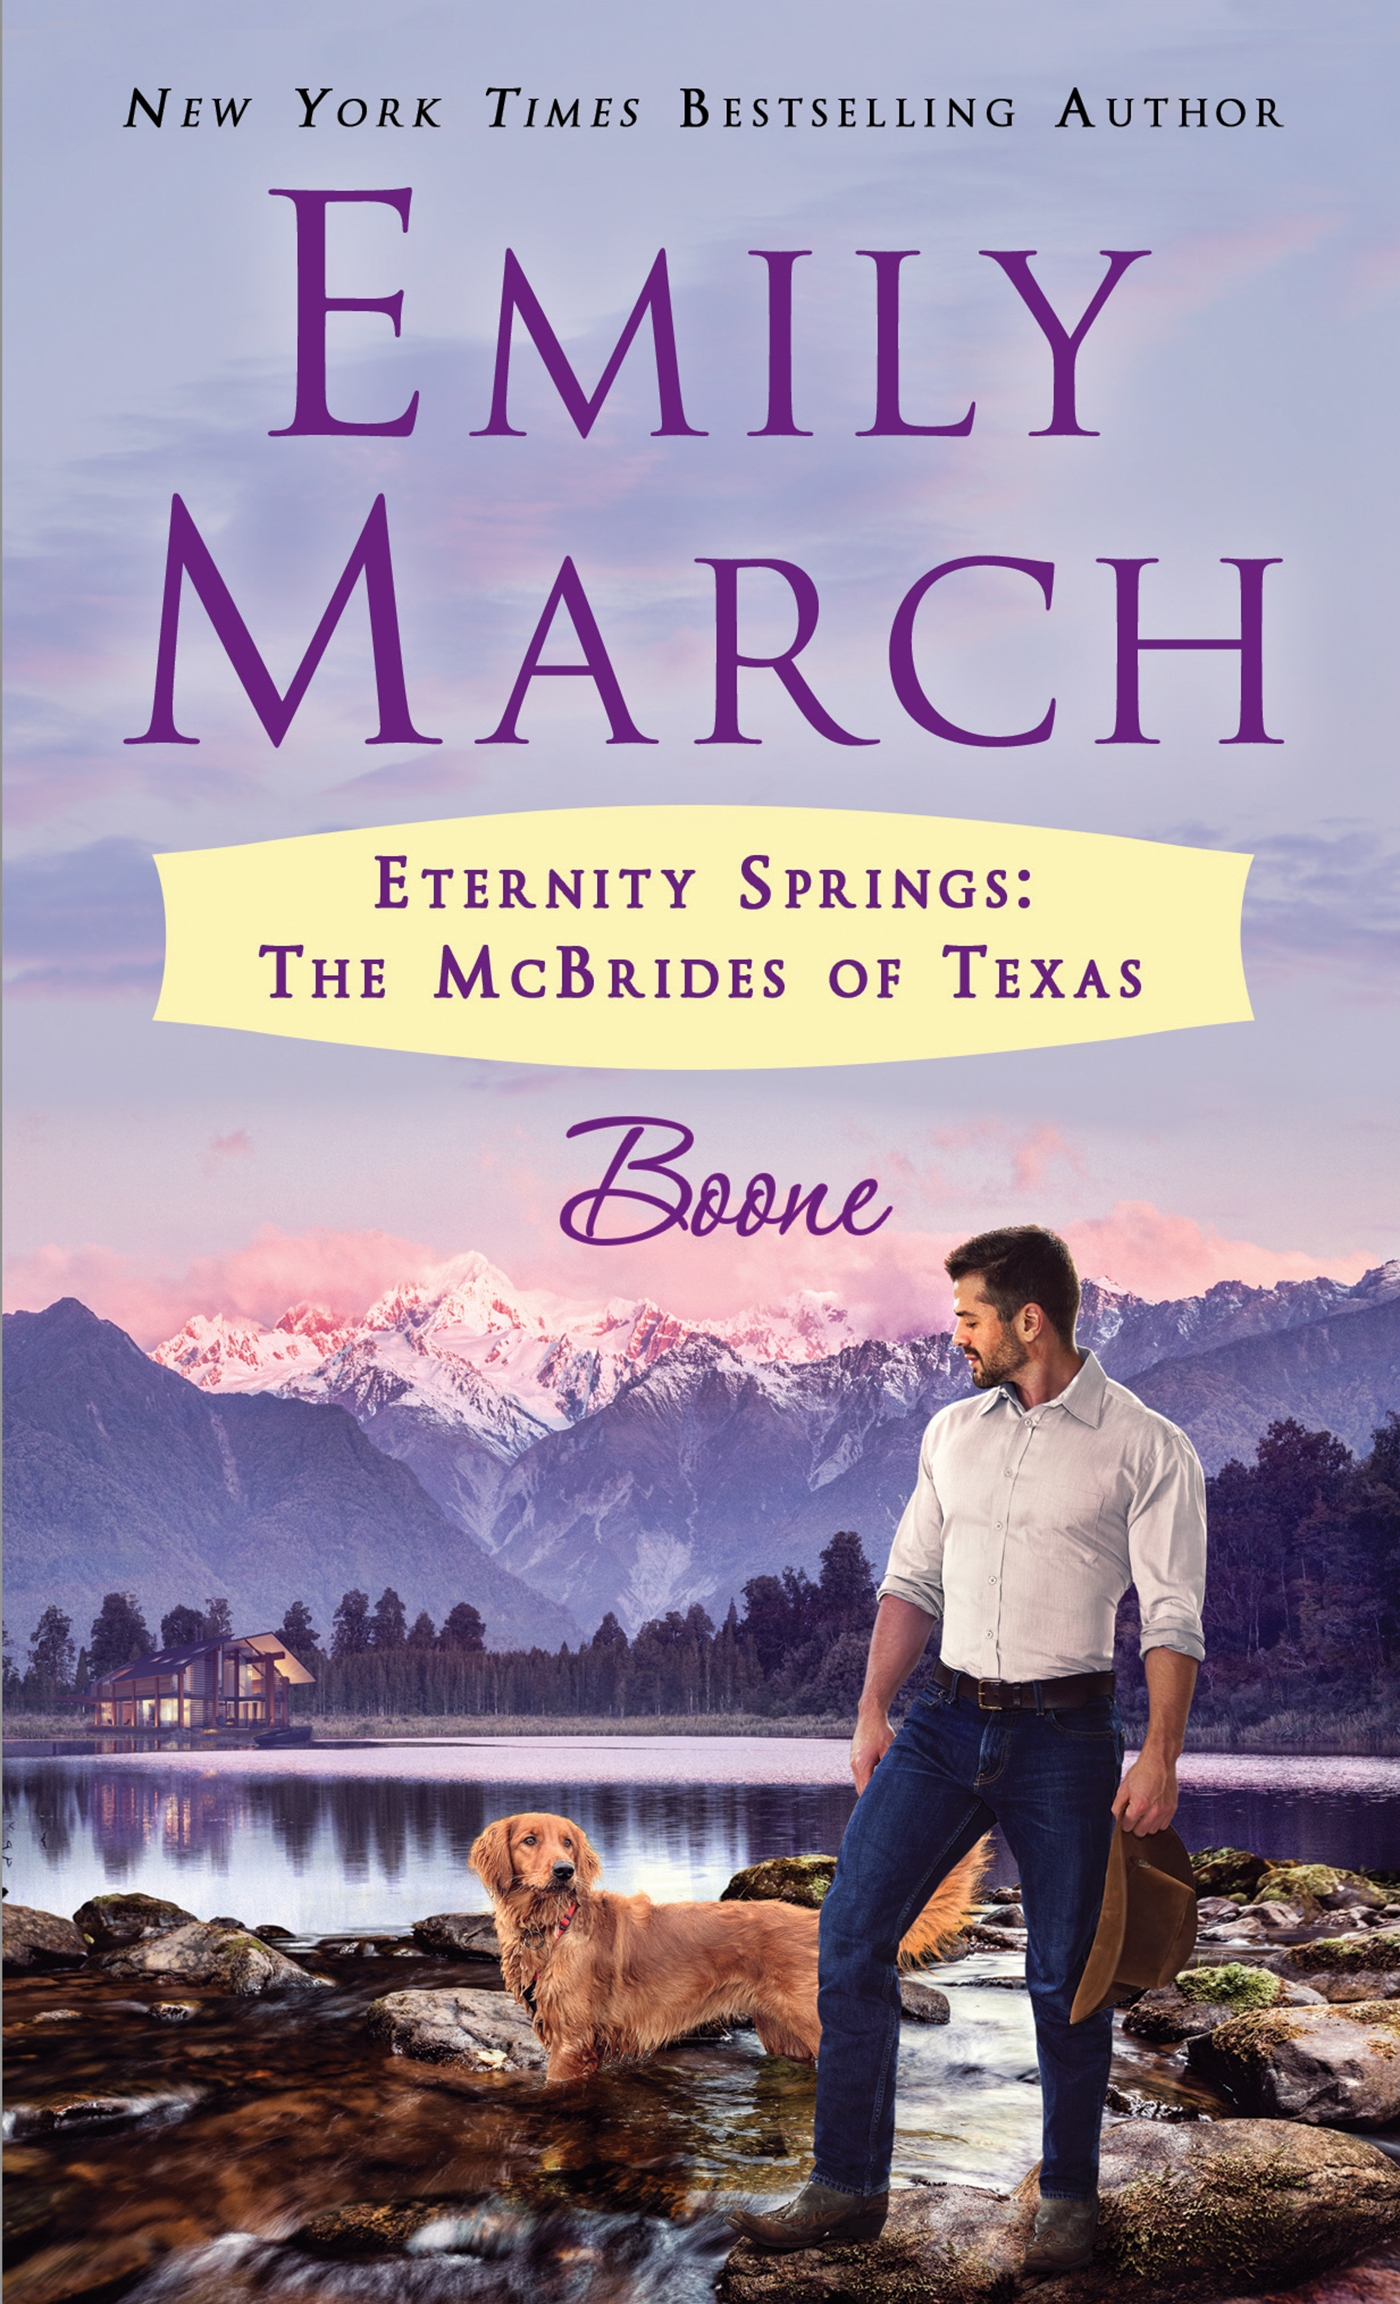 Boone Eternity Springs: The McBrides of Texas